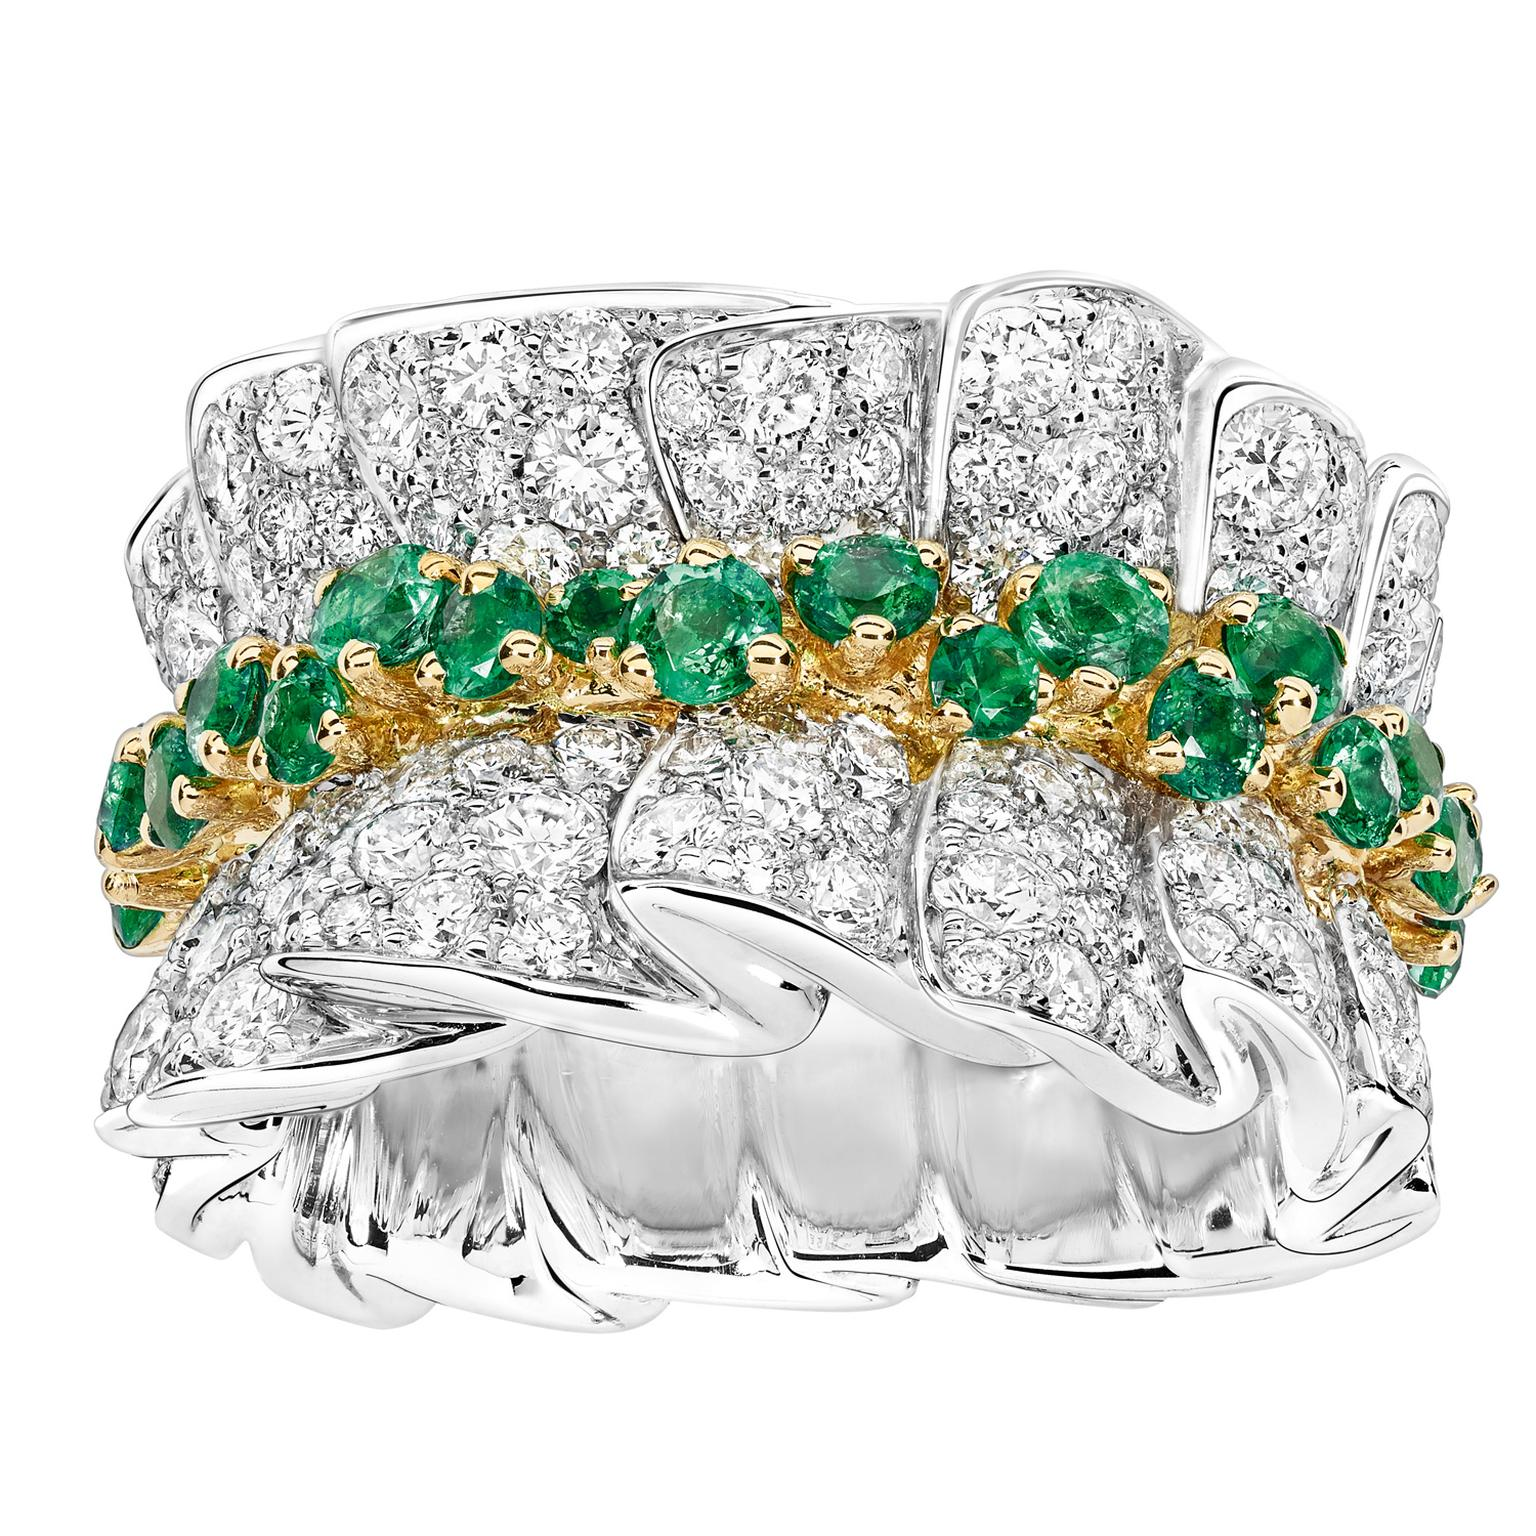 Archi Dior Bar en Corolle emerald and diamond ring